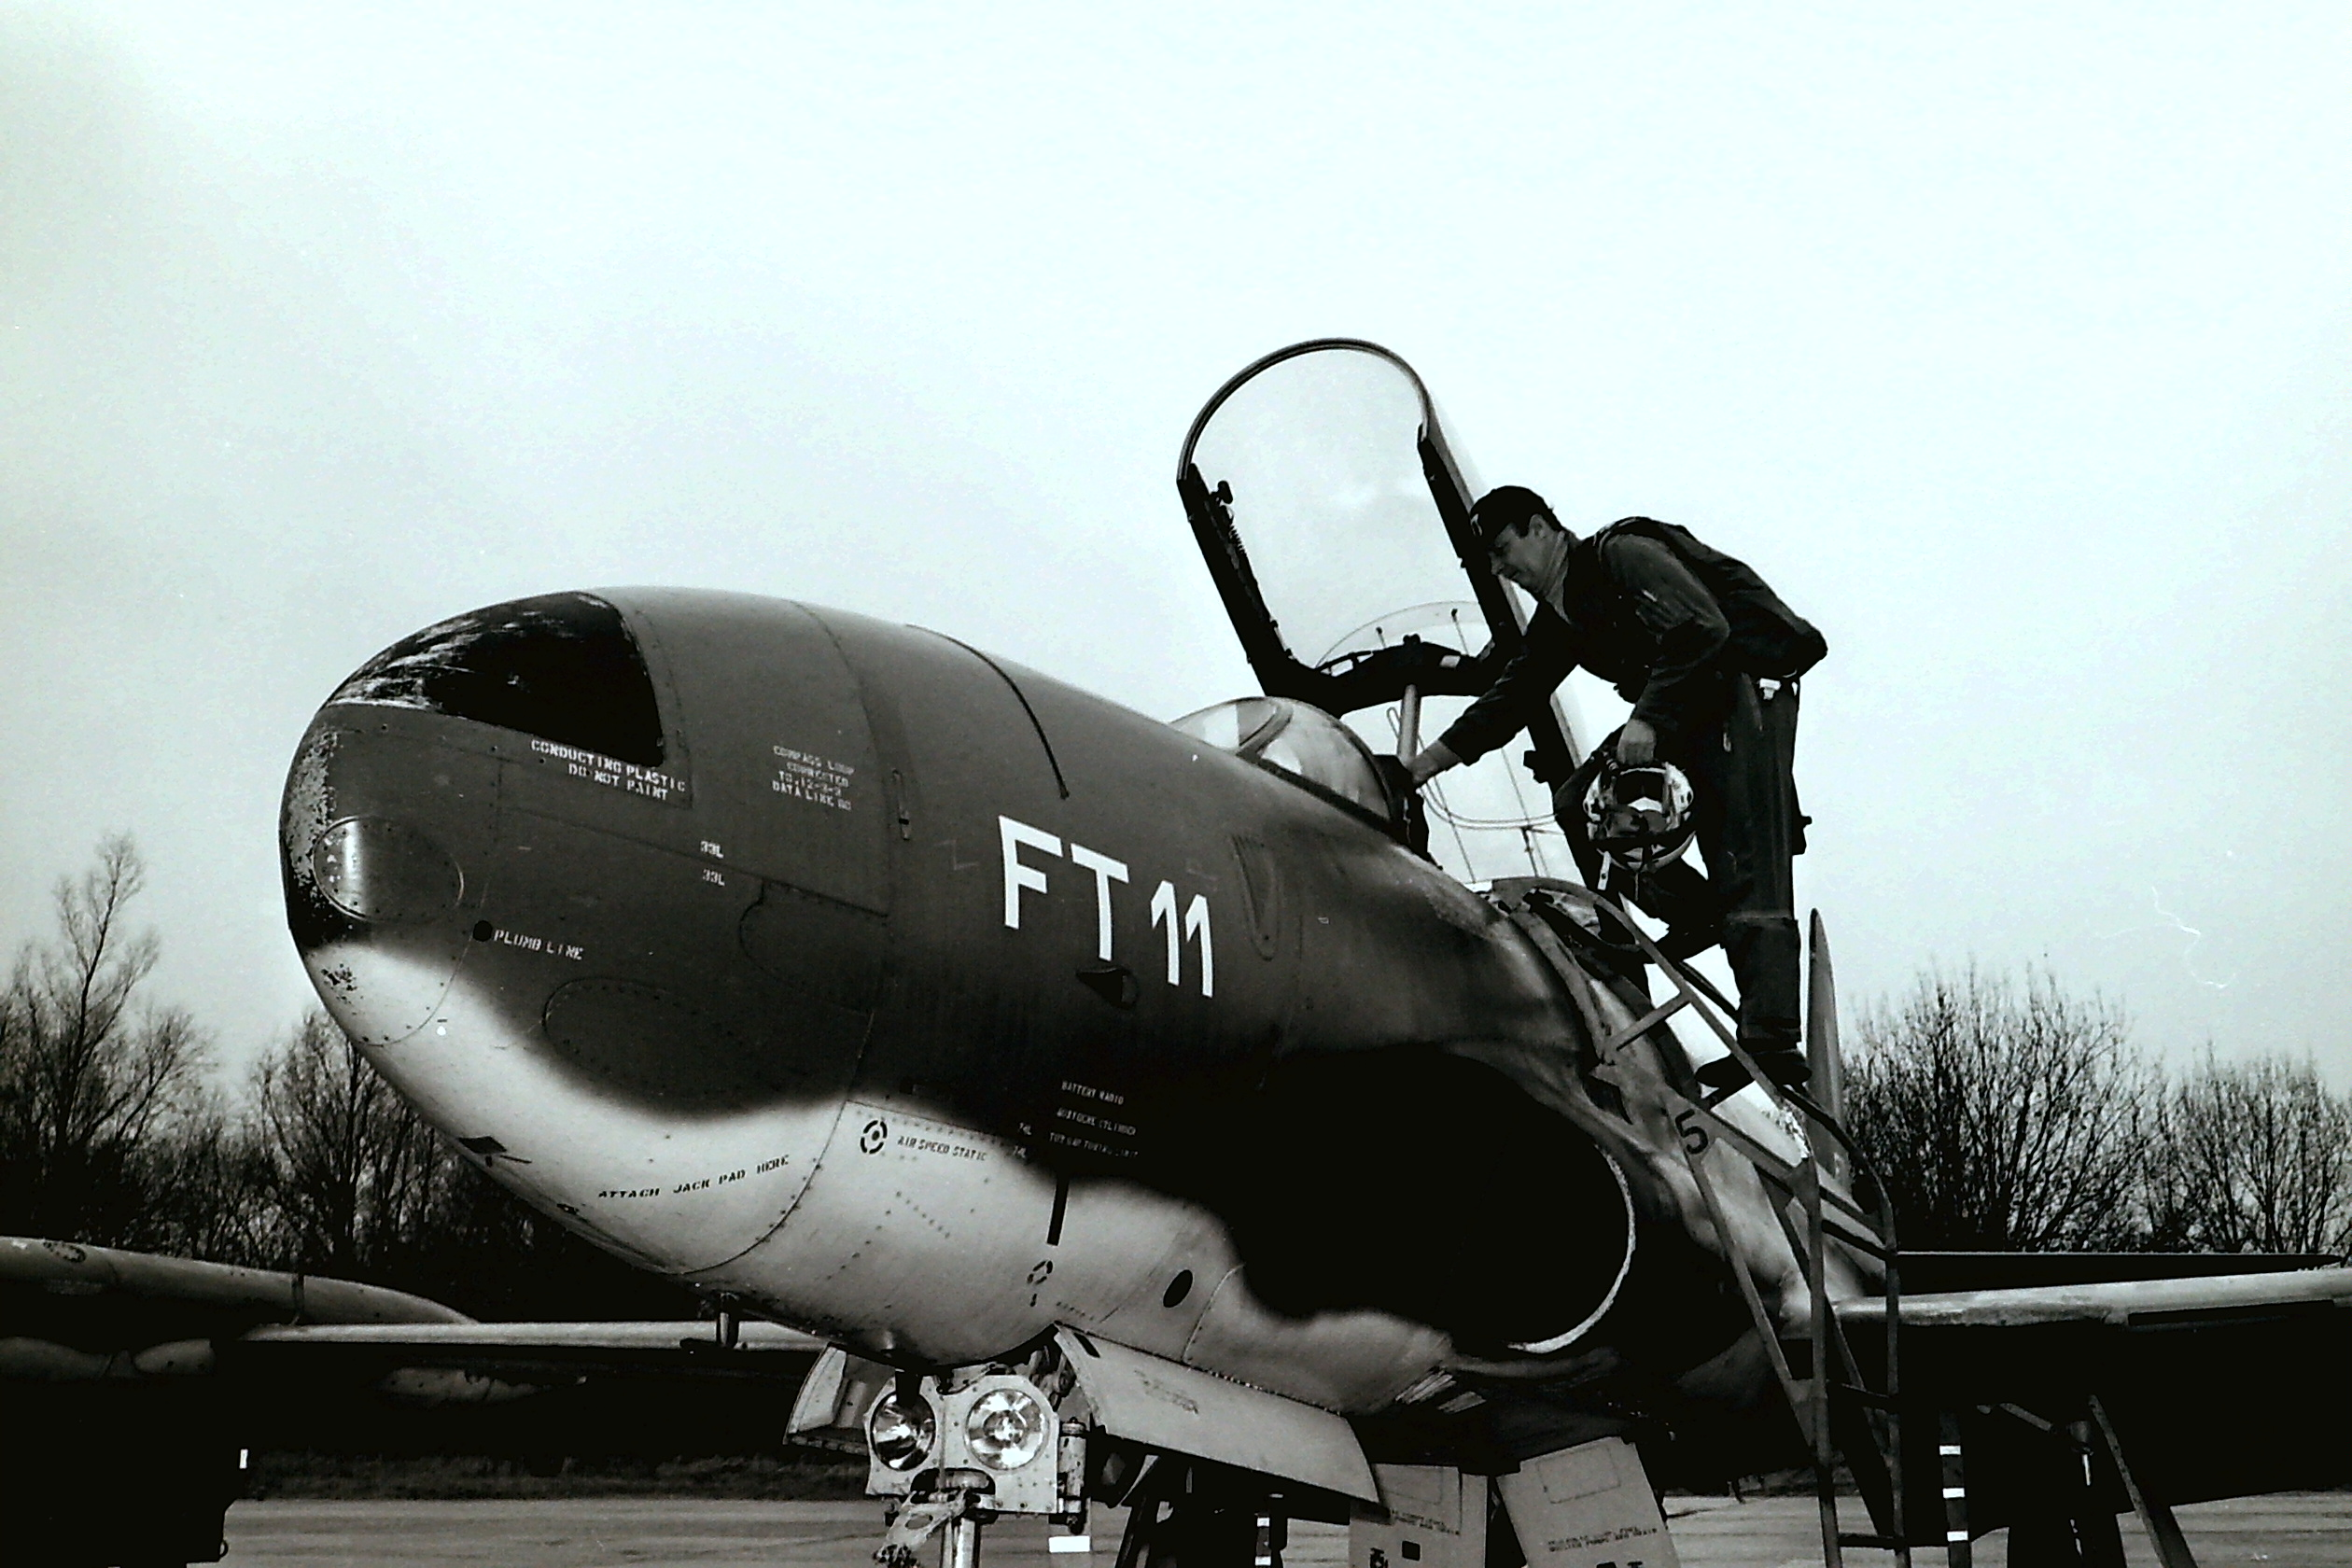 T 33  FT11 Cdt Verbruggen Entering Cockpit